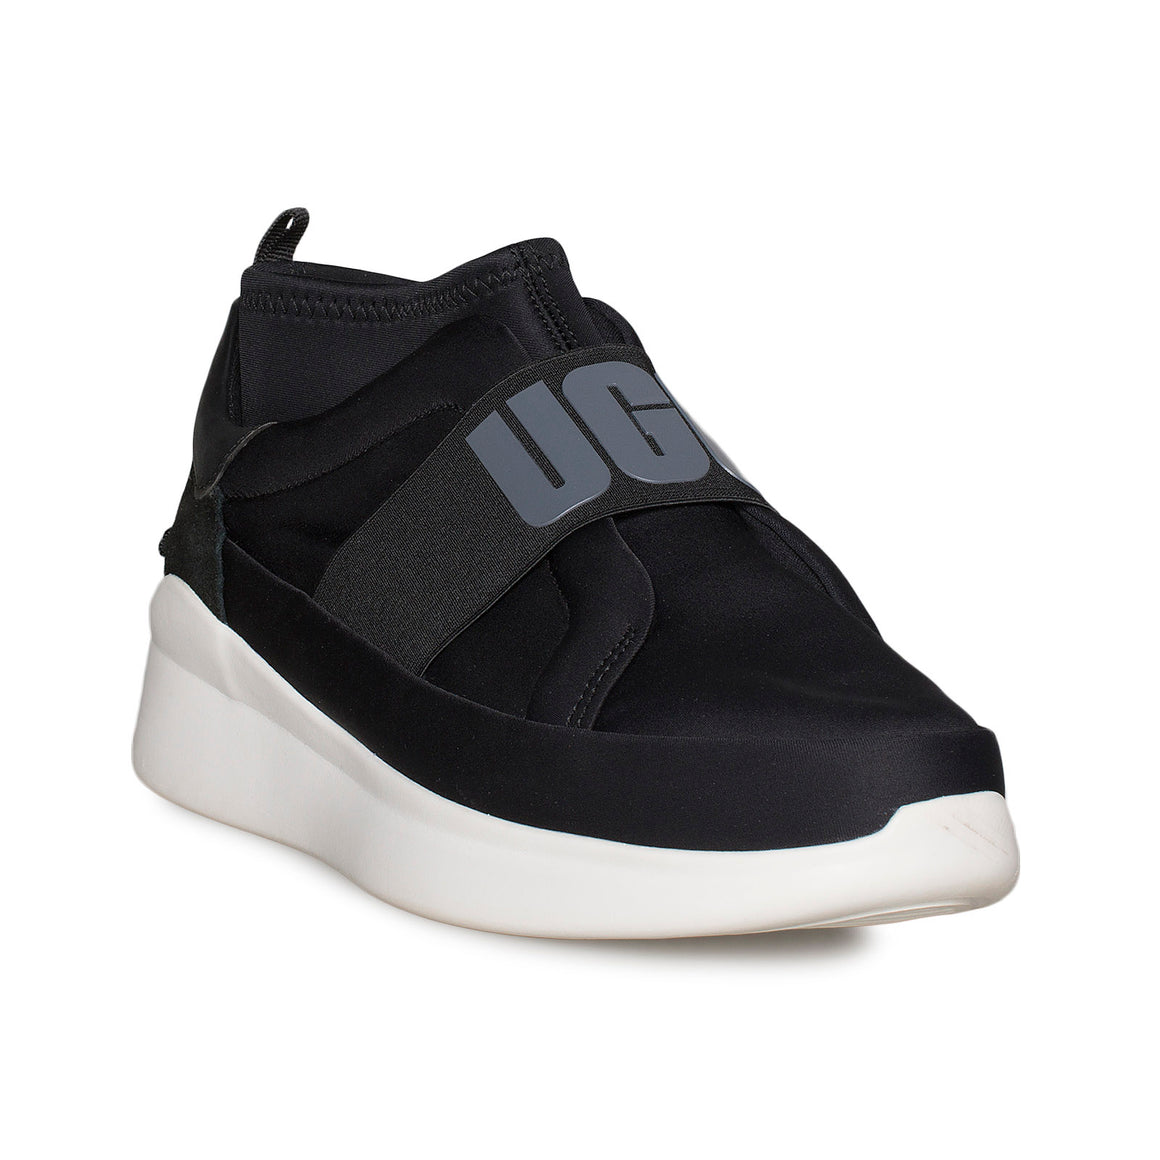 UGG Neutra Black Sneakers - Women's